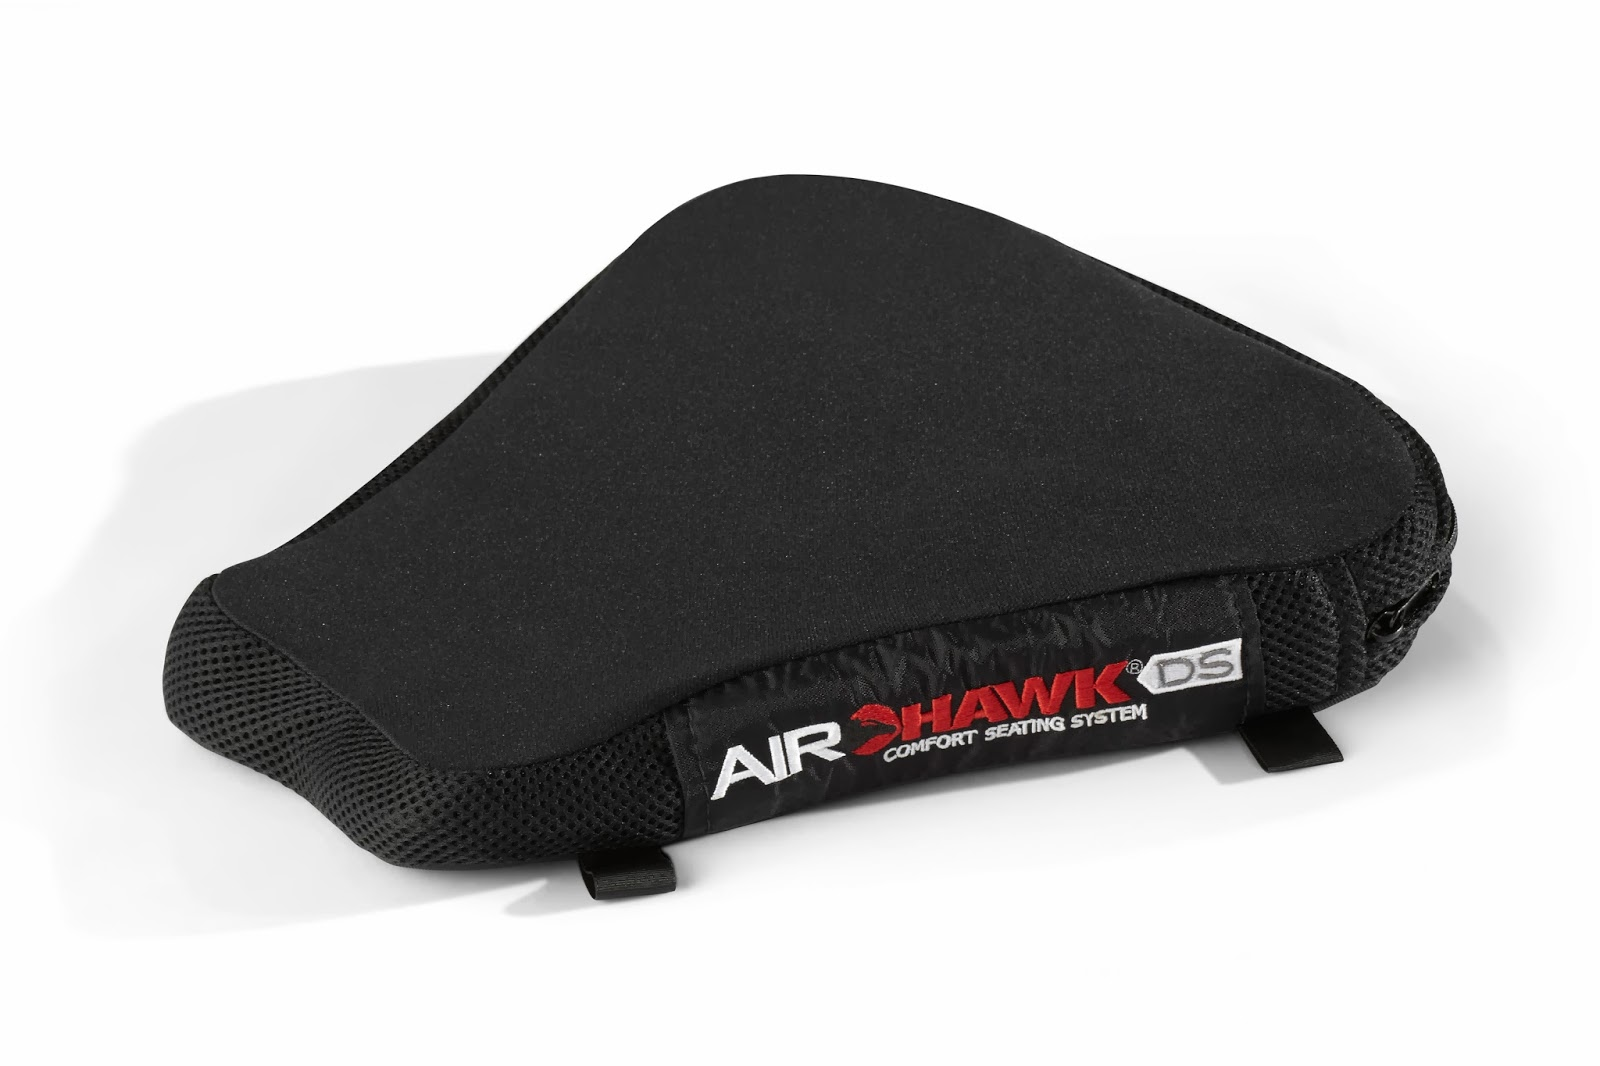 Airhawk seat specifically for adventure bikes